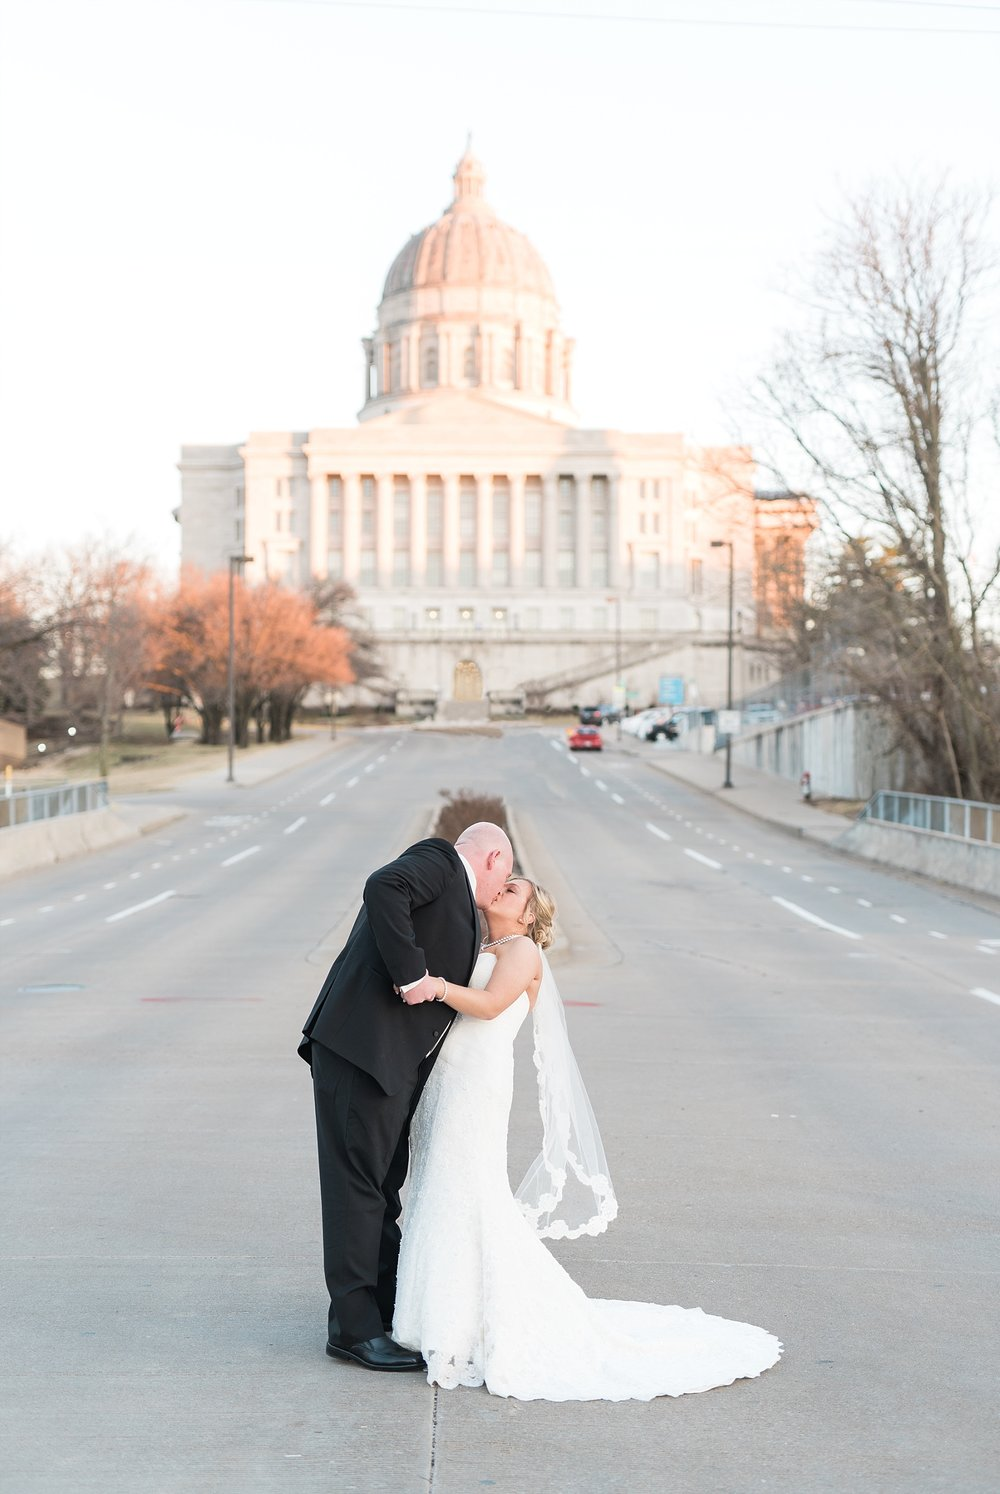 Light and Airy Spring Wedding Downtown Jefferson City Missouri State Capitol Millbottom_0033.jpg